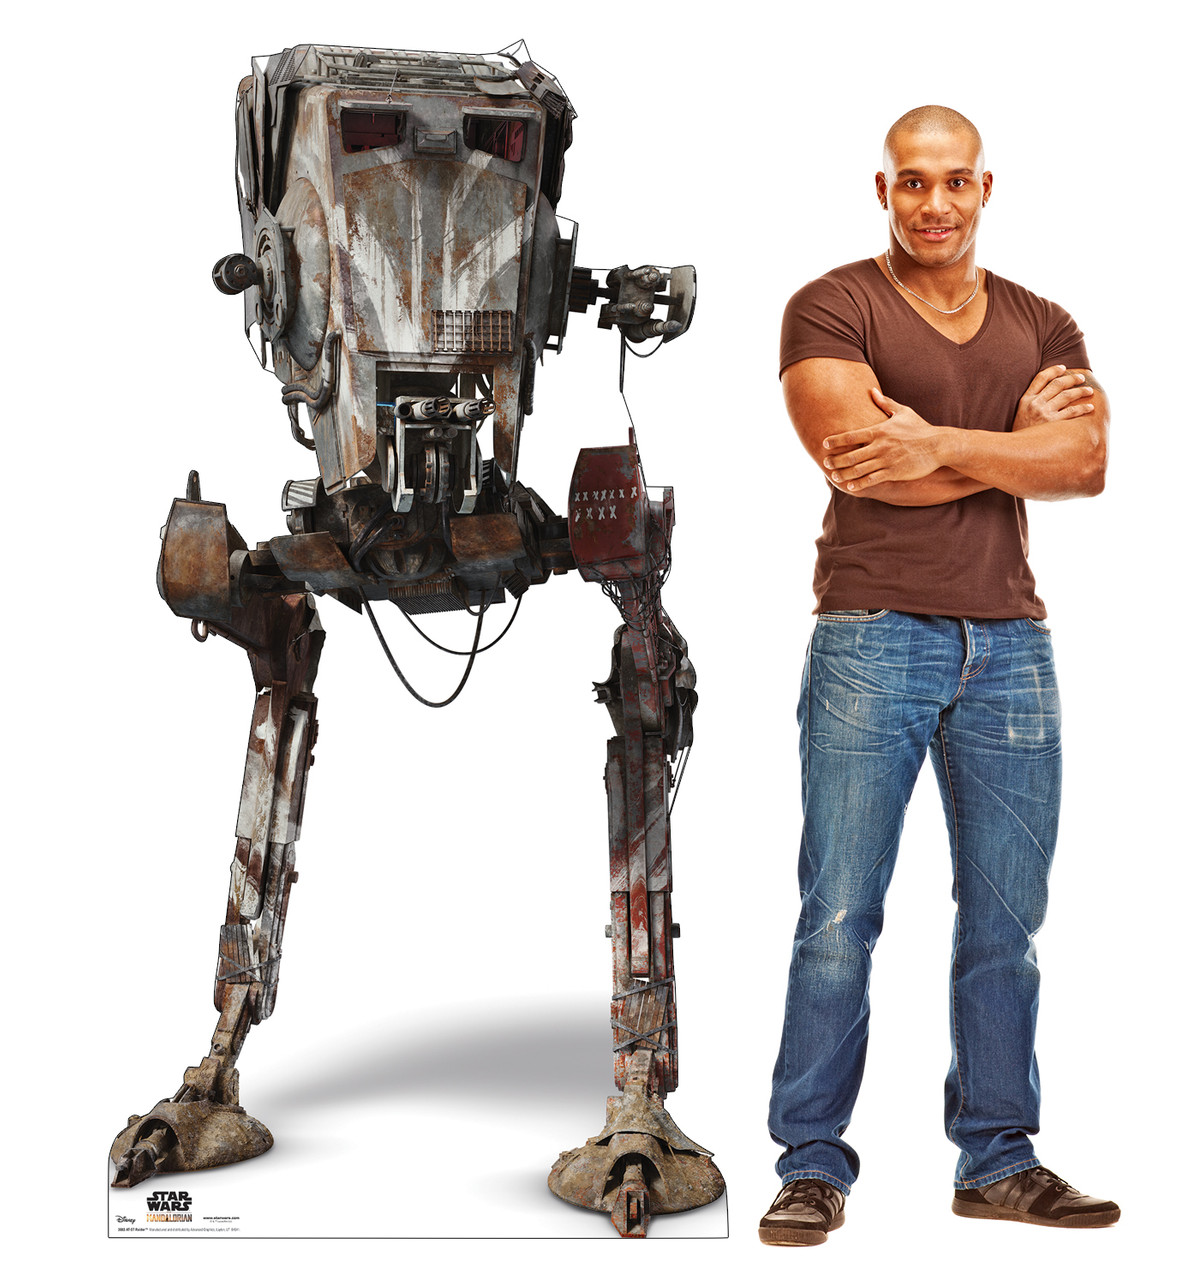 Life-size cardboard standee of AT-ST Raider from The Mandalorian with model.